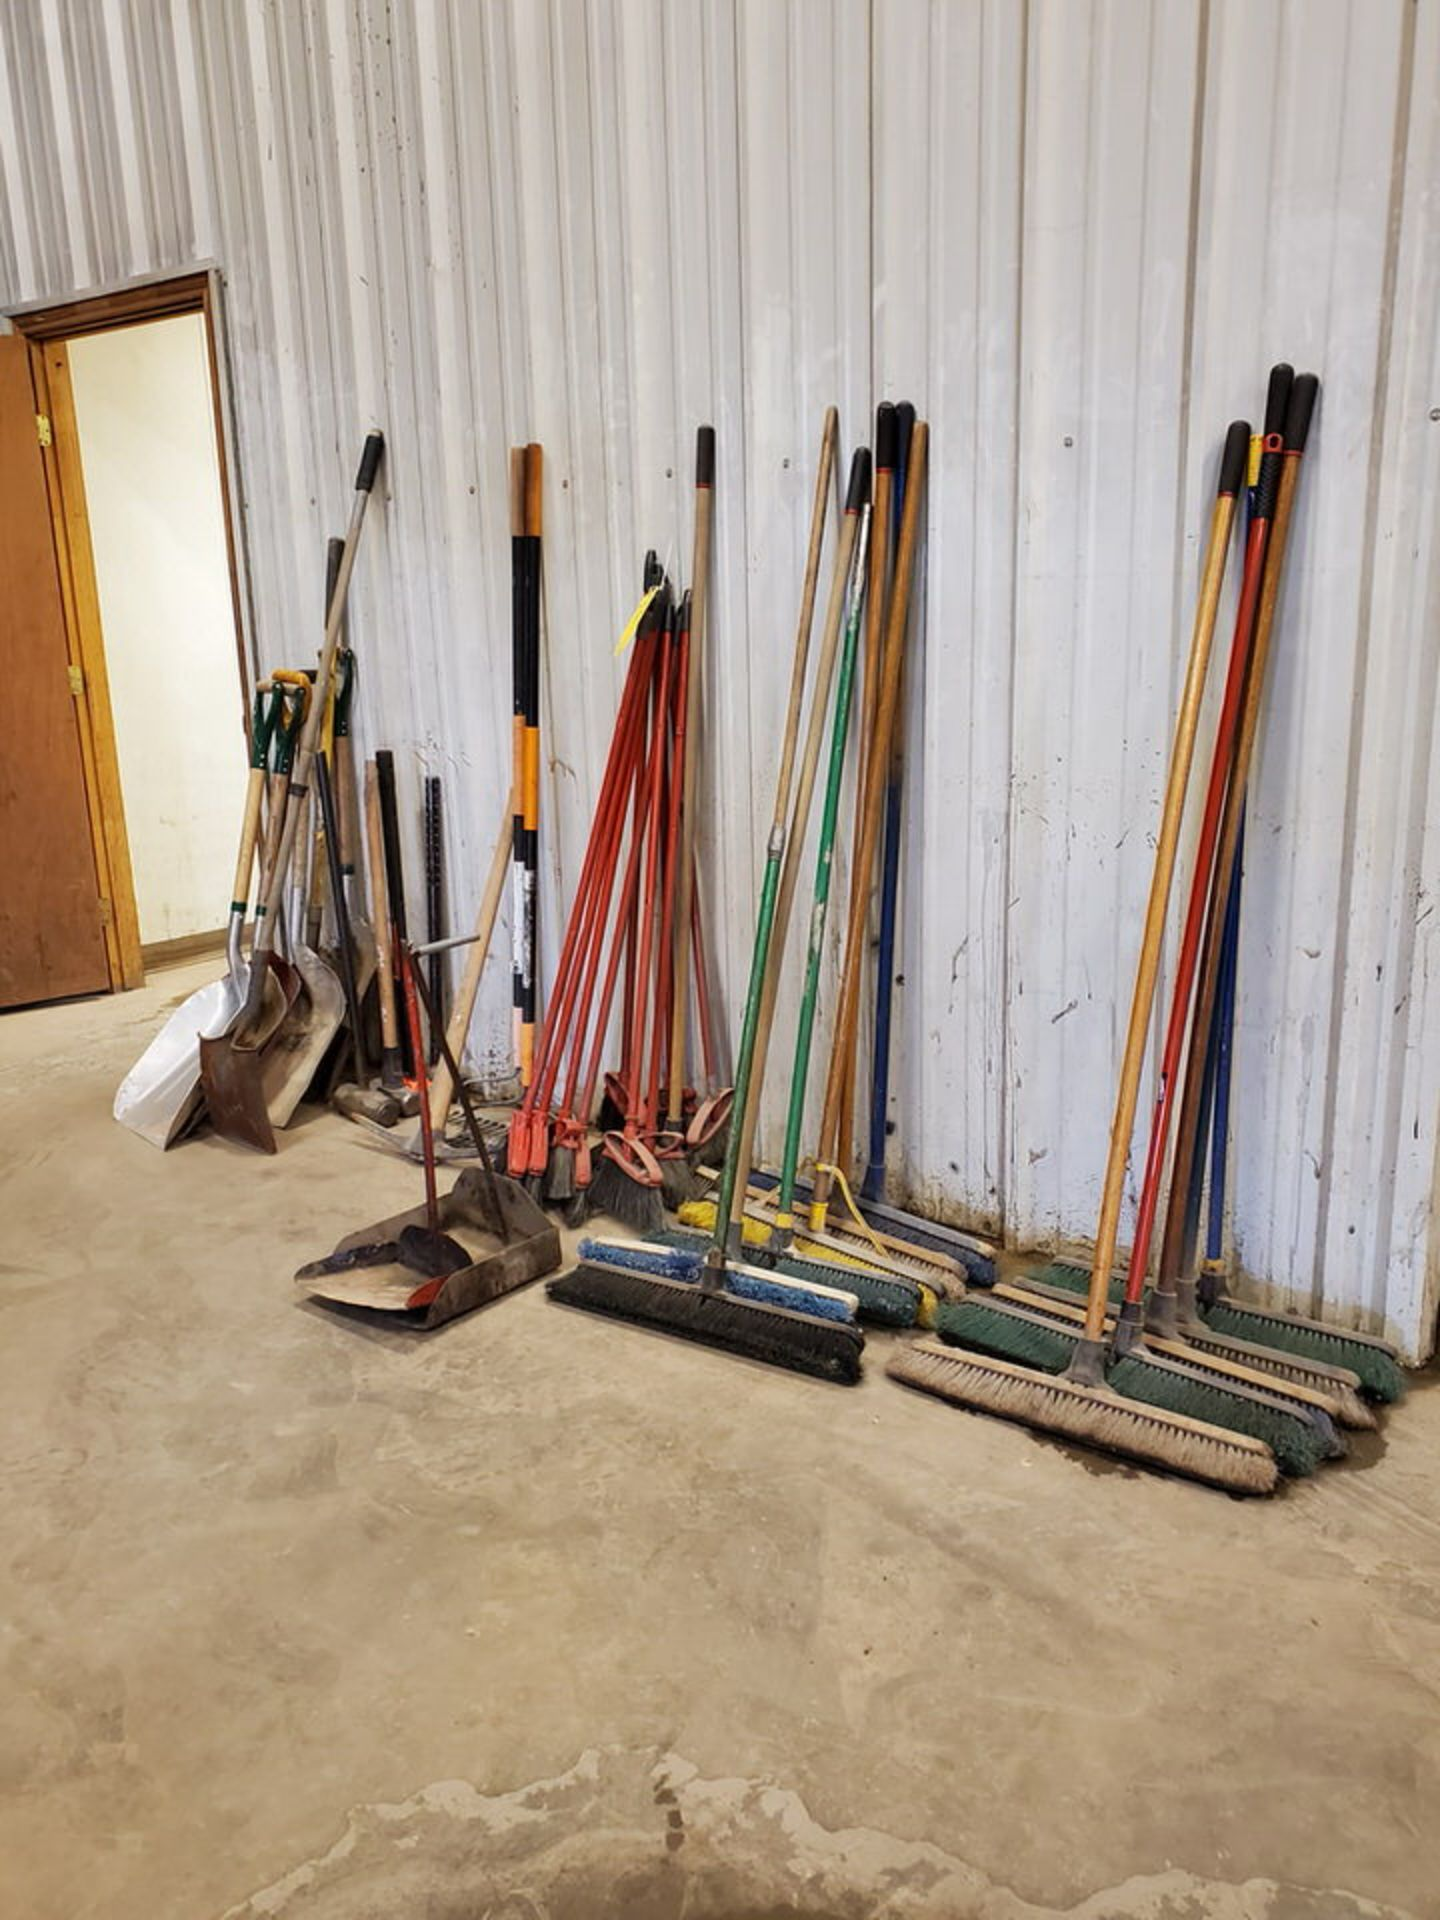 Assorted Cleaning & Yard Matl To Include But Not Limited To: Brooms, Shovels, Rakes, Dust Pans, - Image 5 of 6